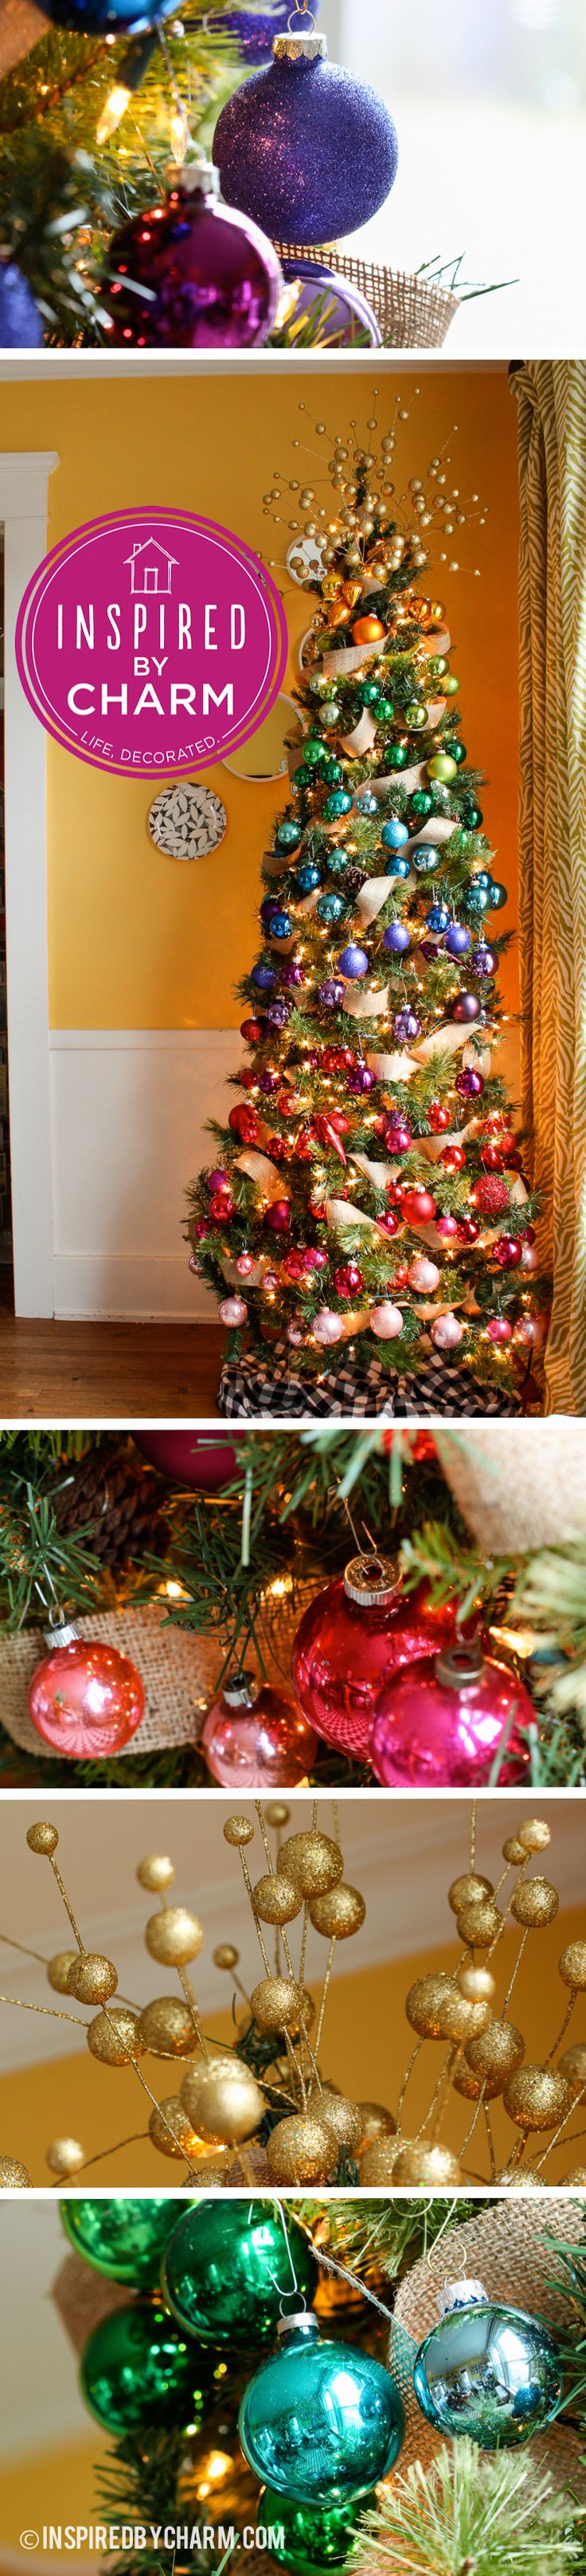 A gradient-inspired rainbow Christmas tree by Michael Wurm, Jr of Inspired by Charm!  See it here: http://www.inspiredbycharm.com/2012/12/12-days-of-christmas-day-6-tree-of.html